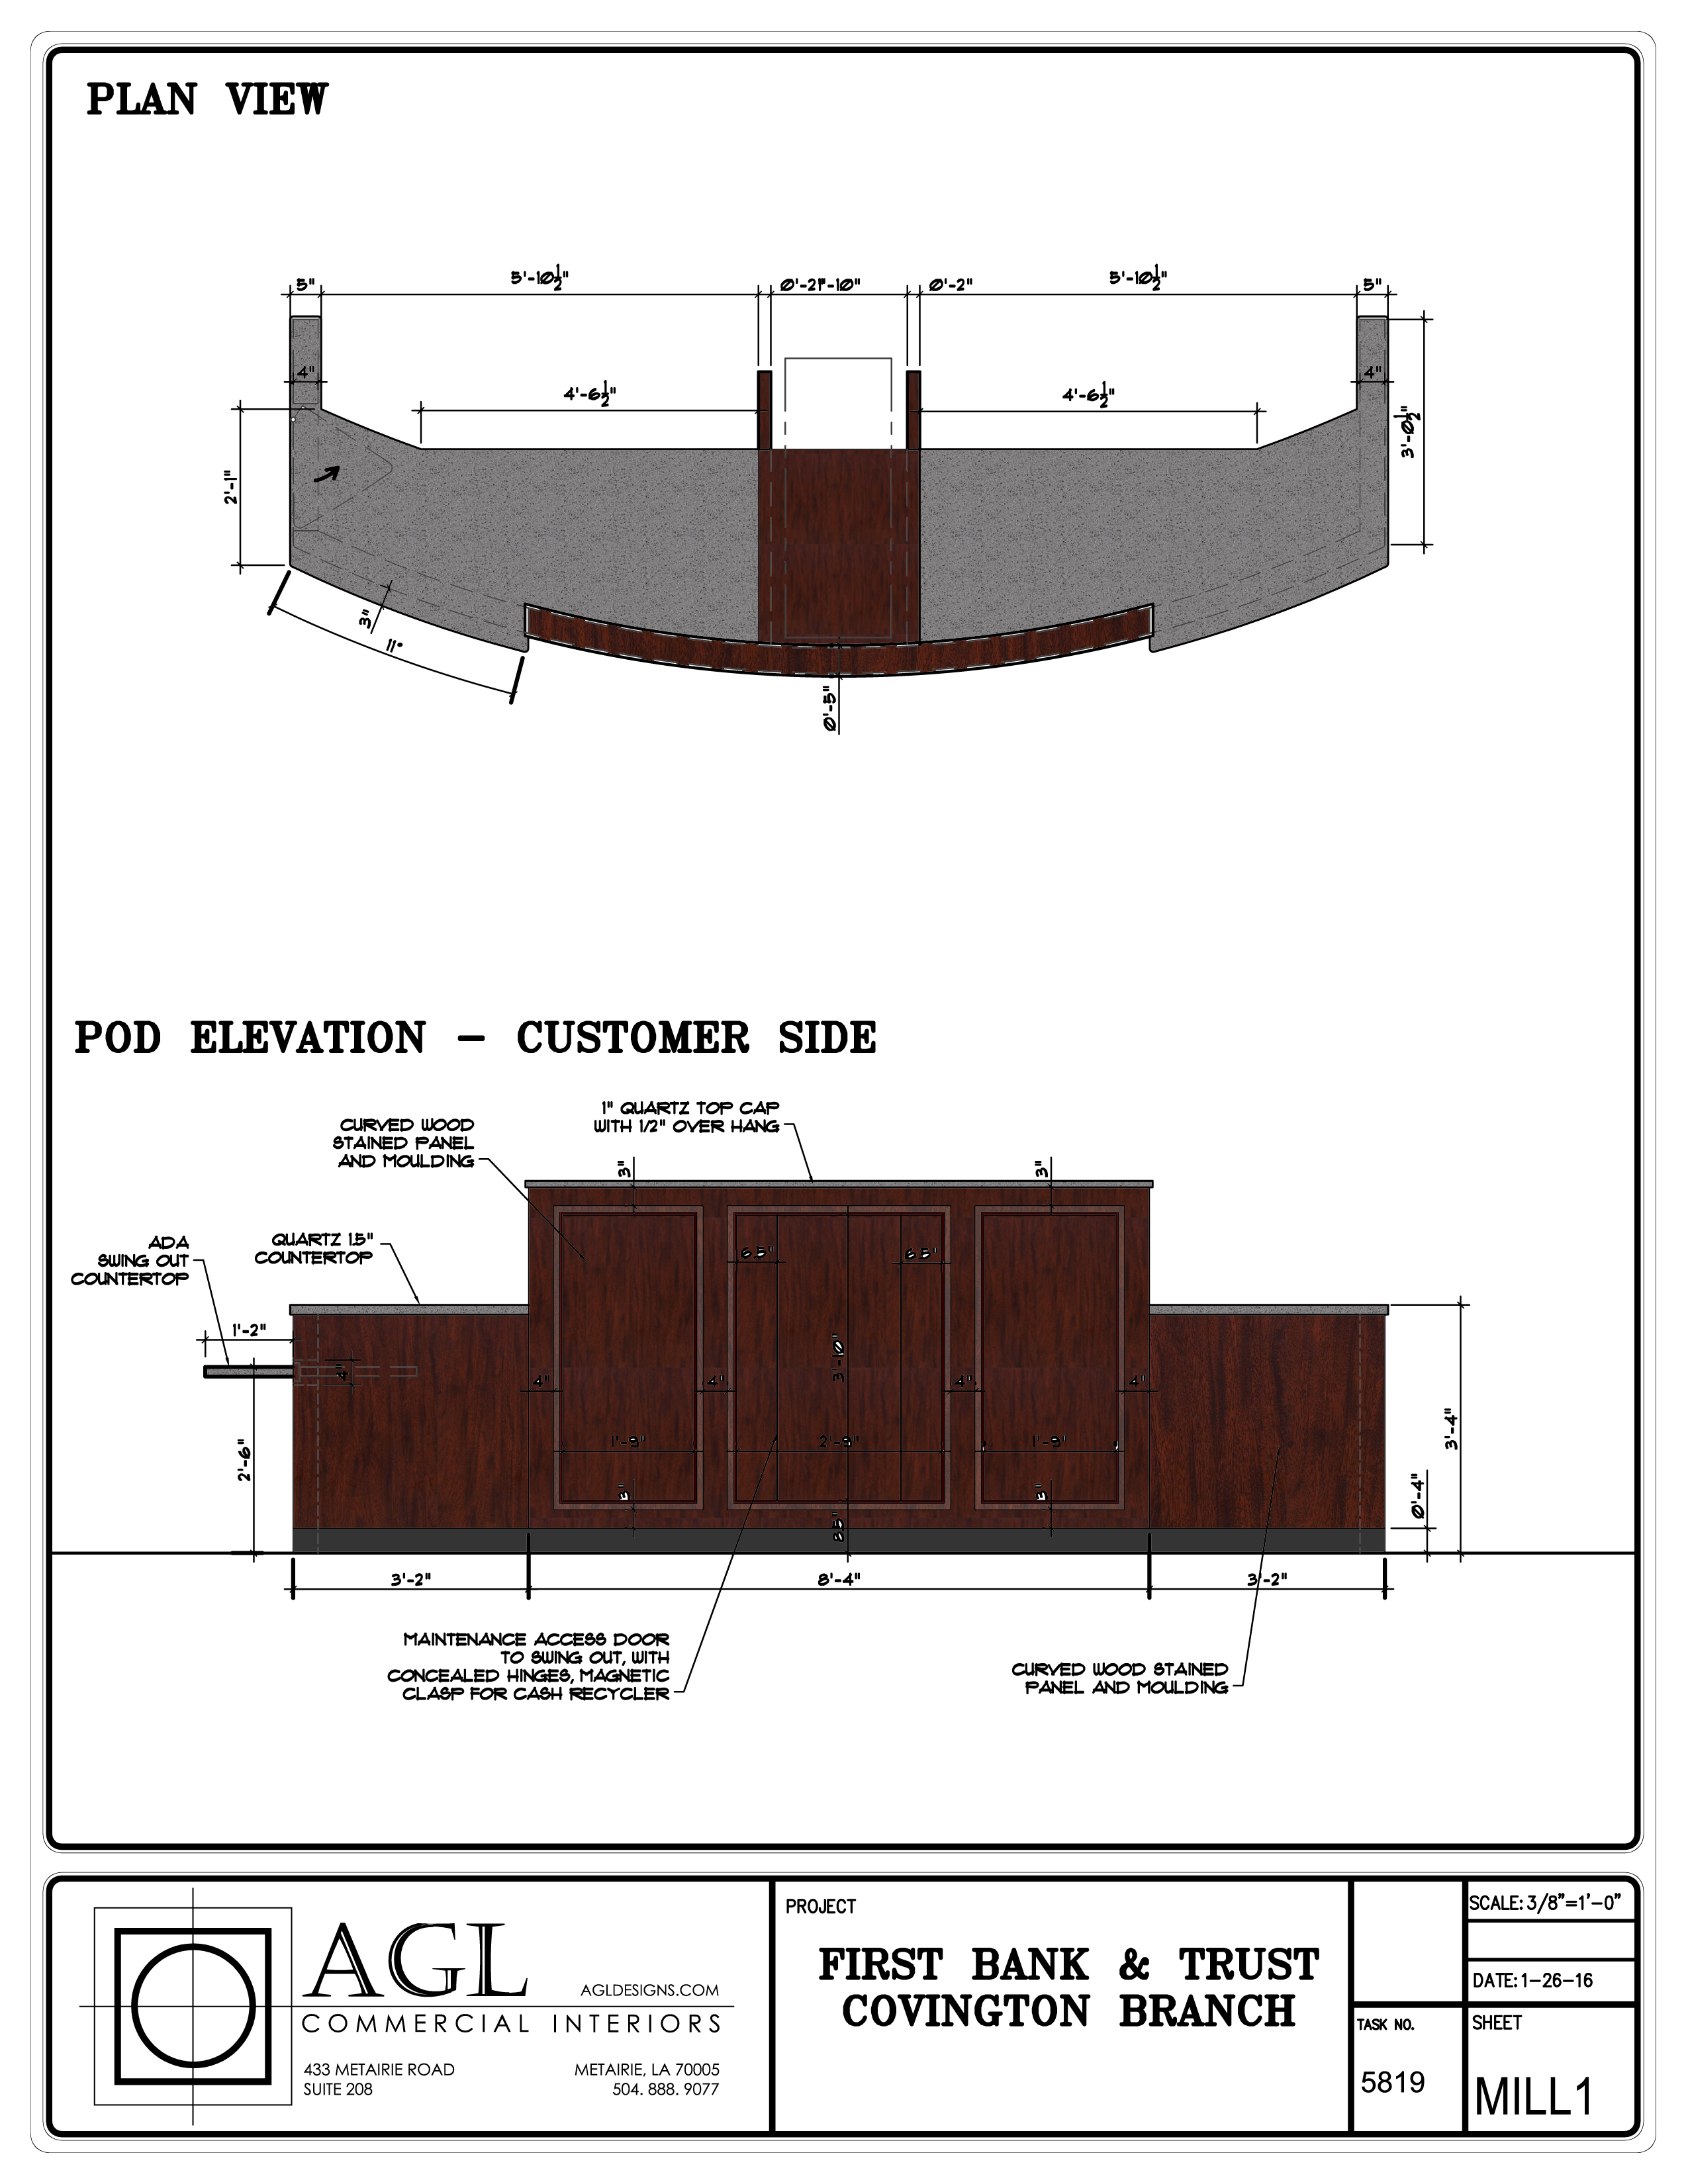 1 Color millwork revisions 2-2-16